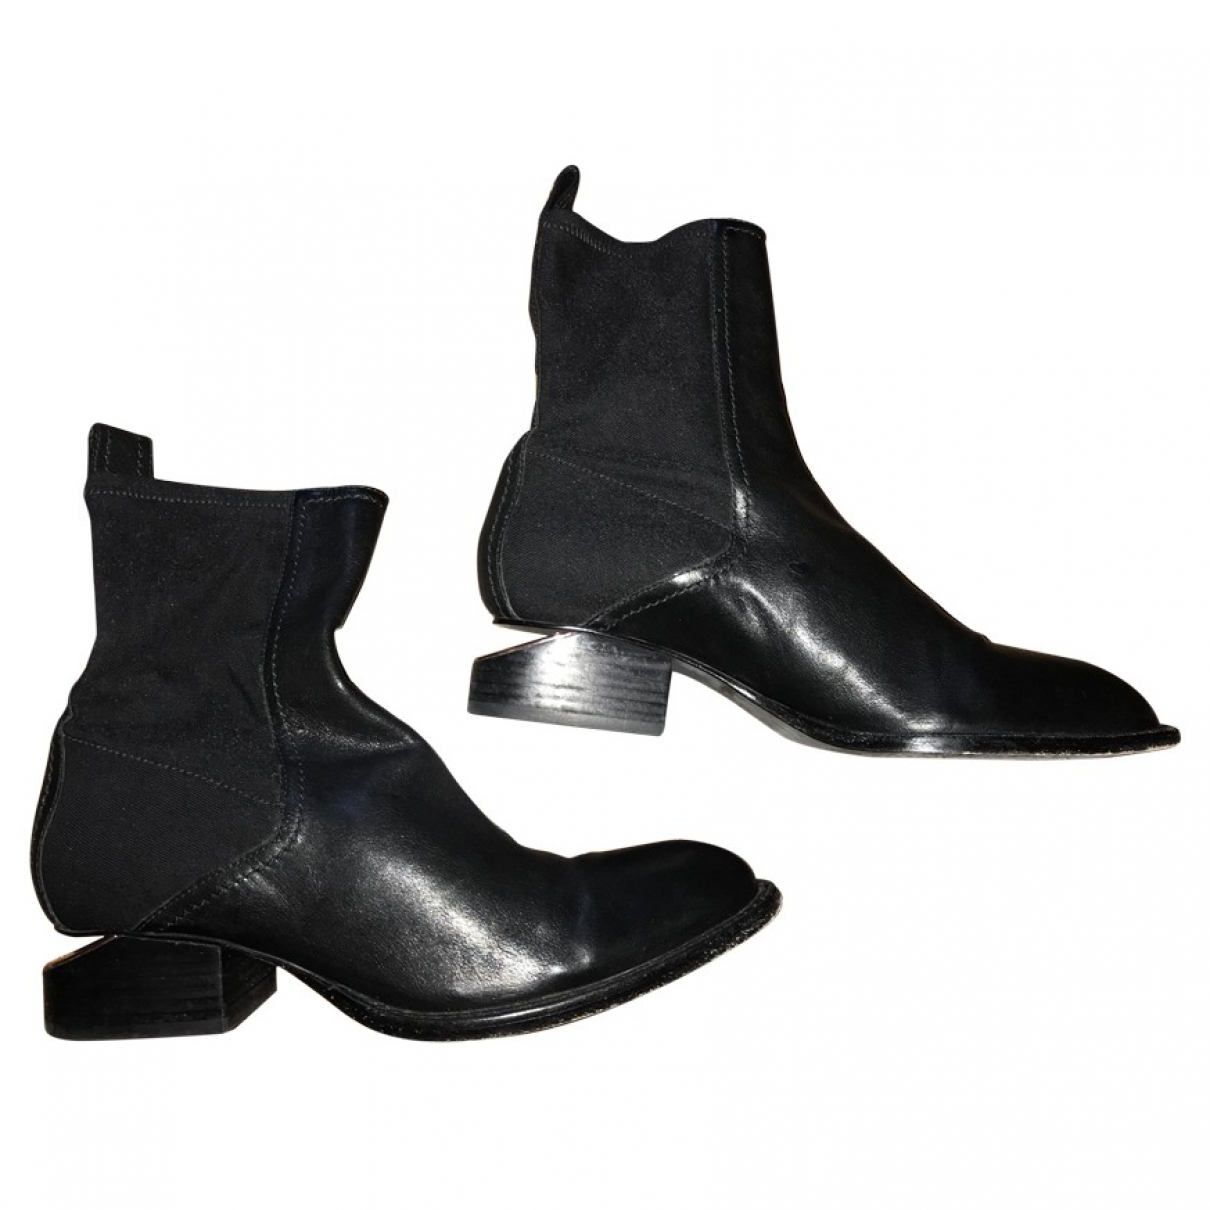 Alexander Wang \N Black Leather Boots for Women 38.5 EU